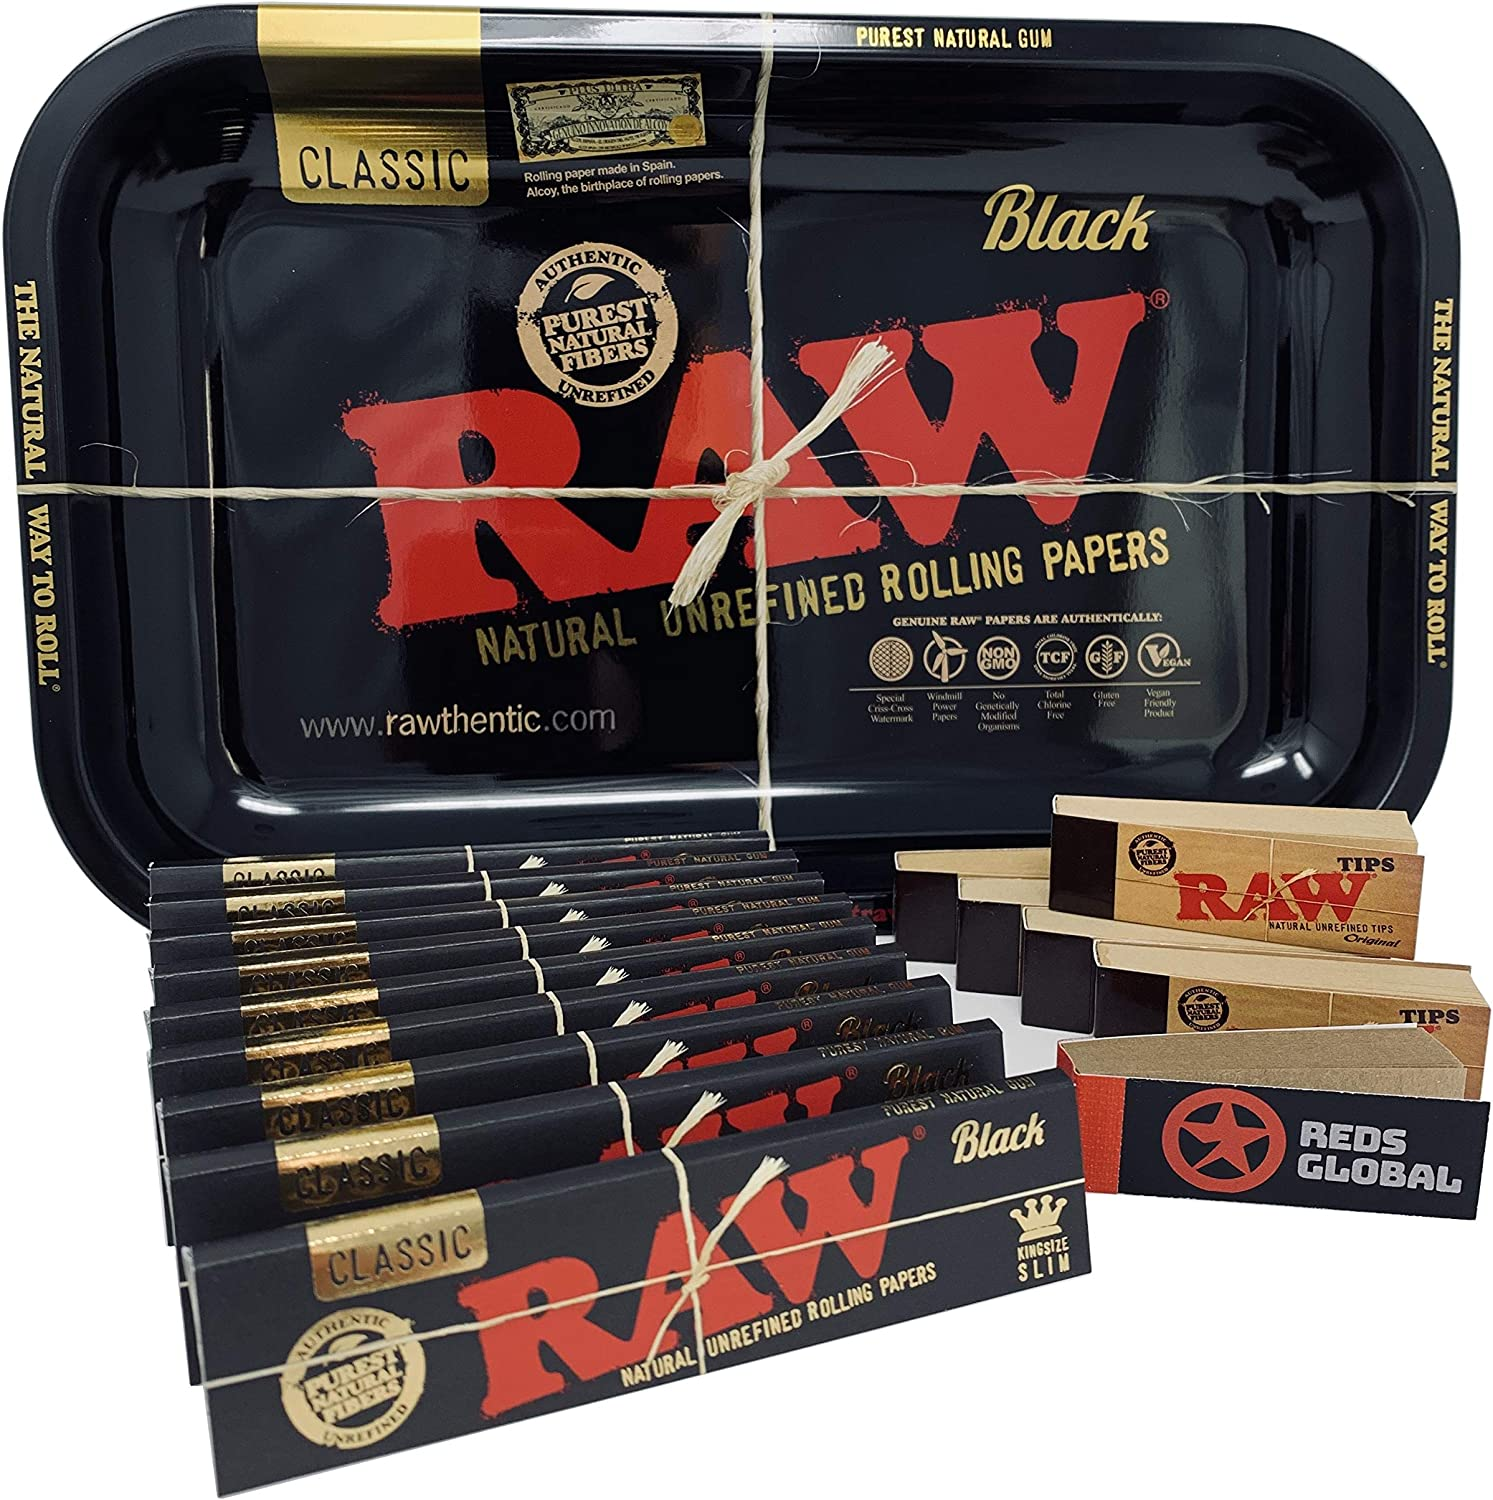 REDS EXCLUSIVO PACK BANDEJA RAW BLACK